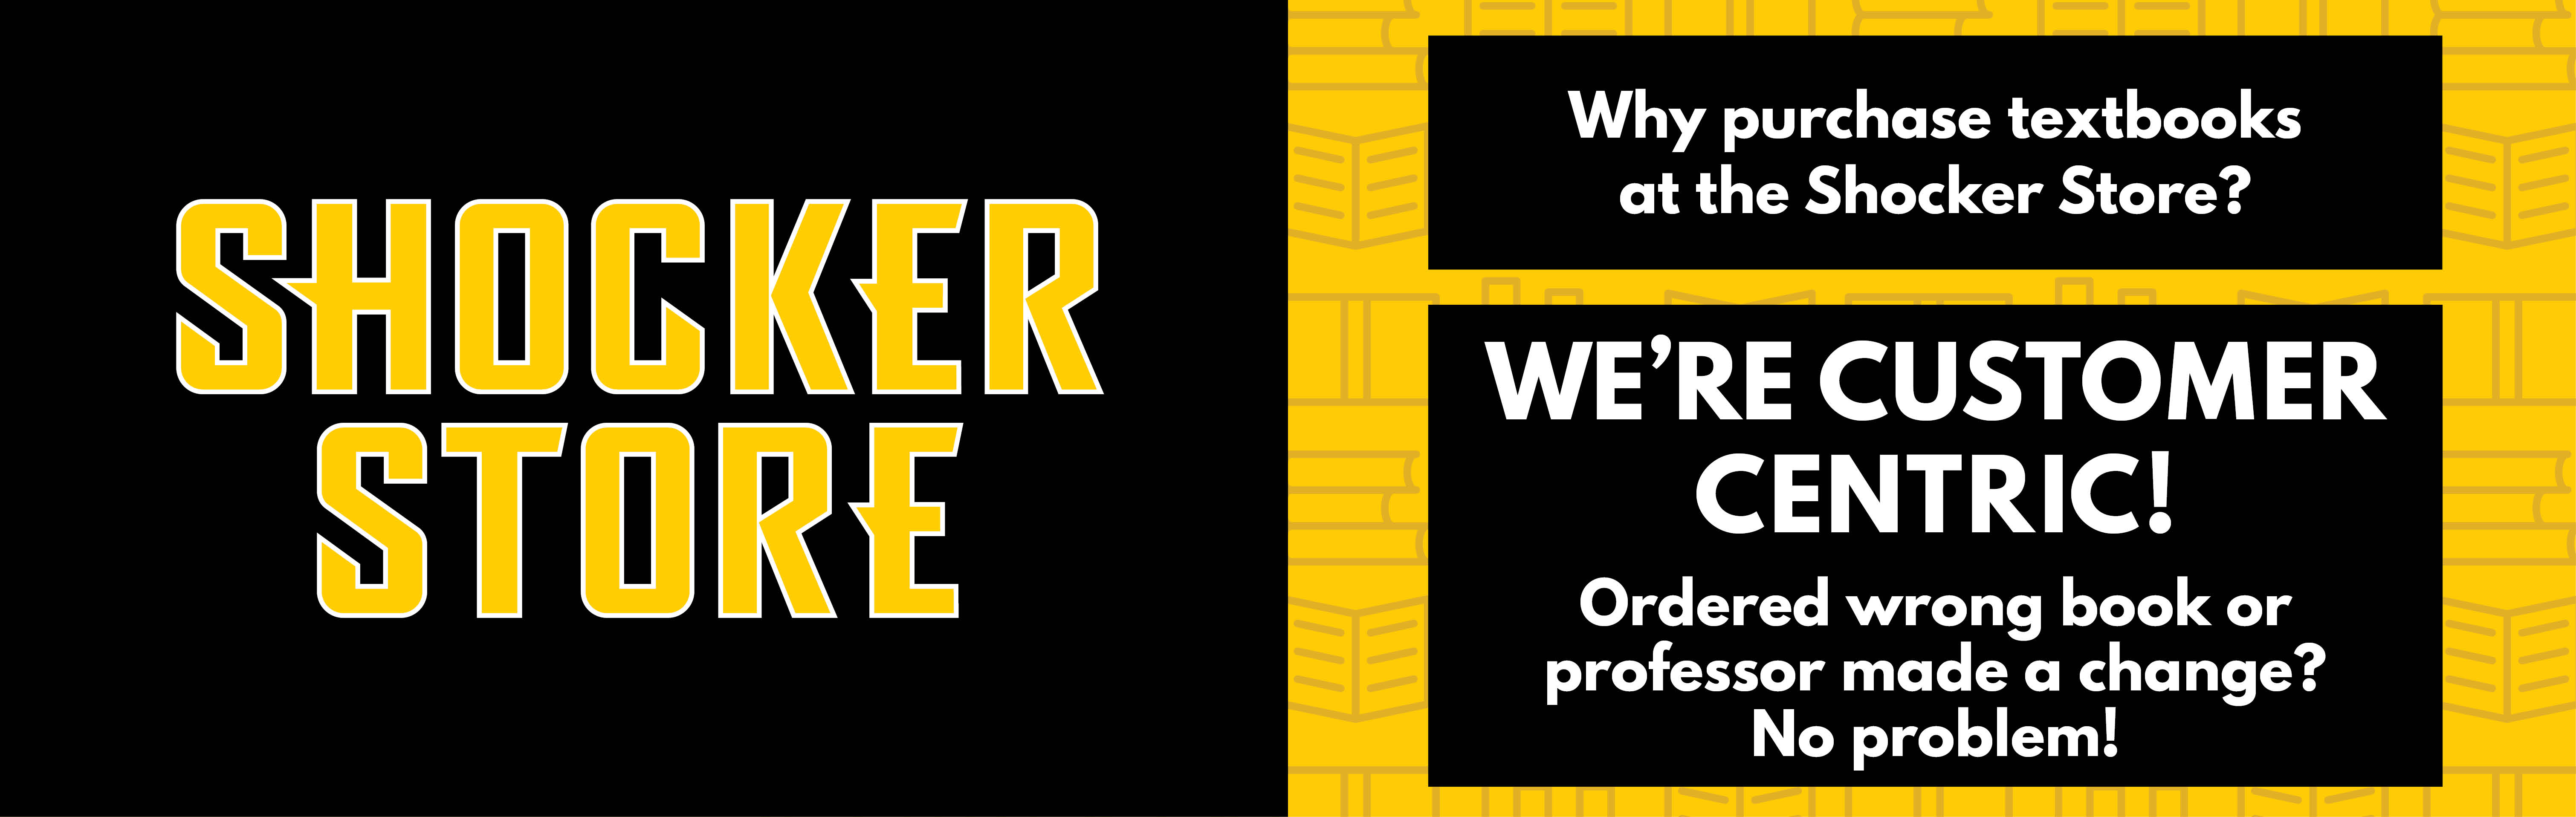 Why purchase textbooks at the Shocker Store? We're customer centric! Ordered wrong book or professor made a change? No problem!